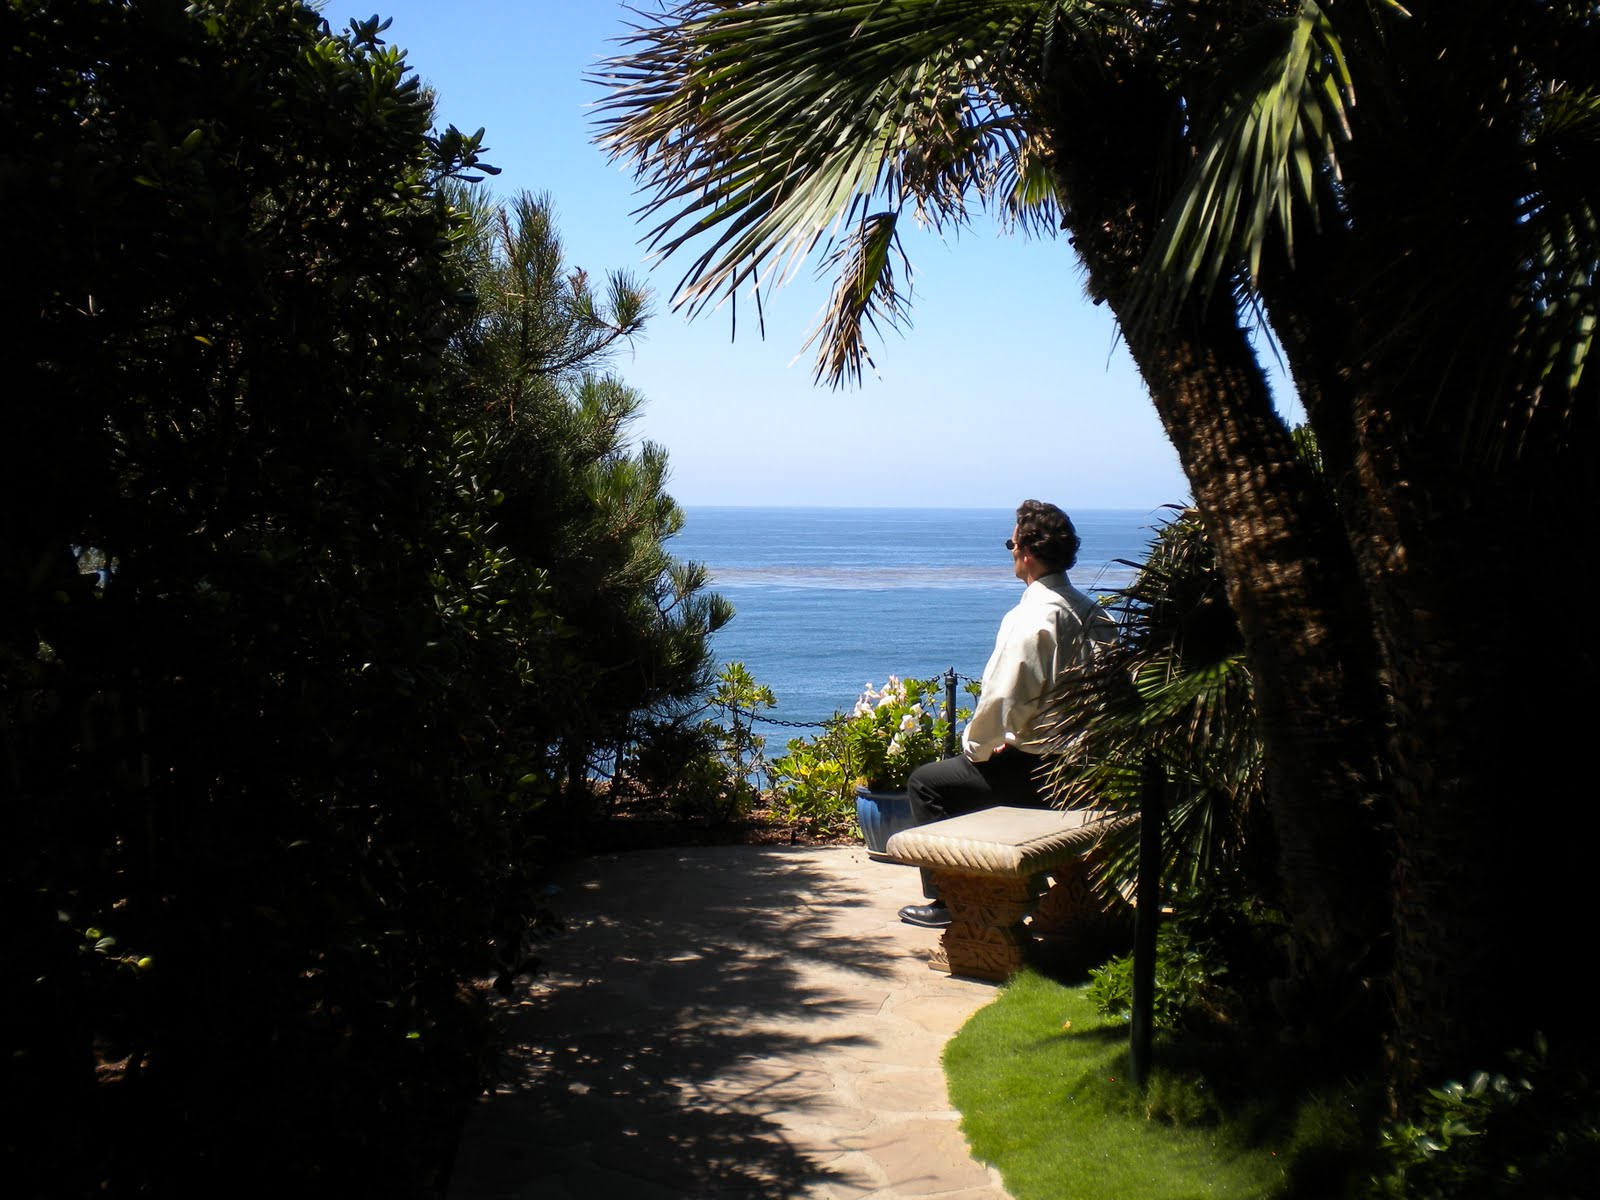 Jacobs Letter Self Realization Fellowship Meditation